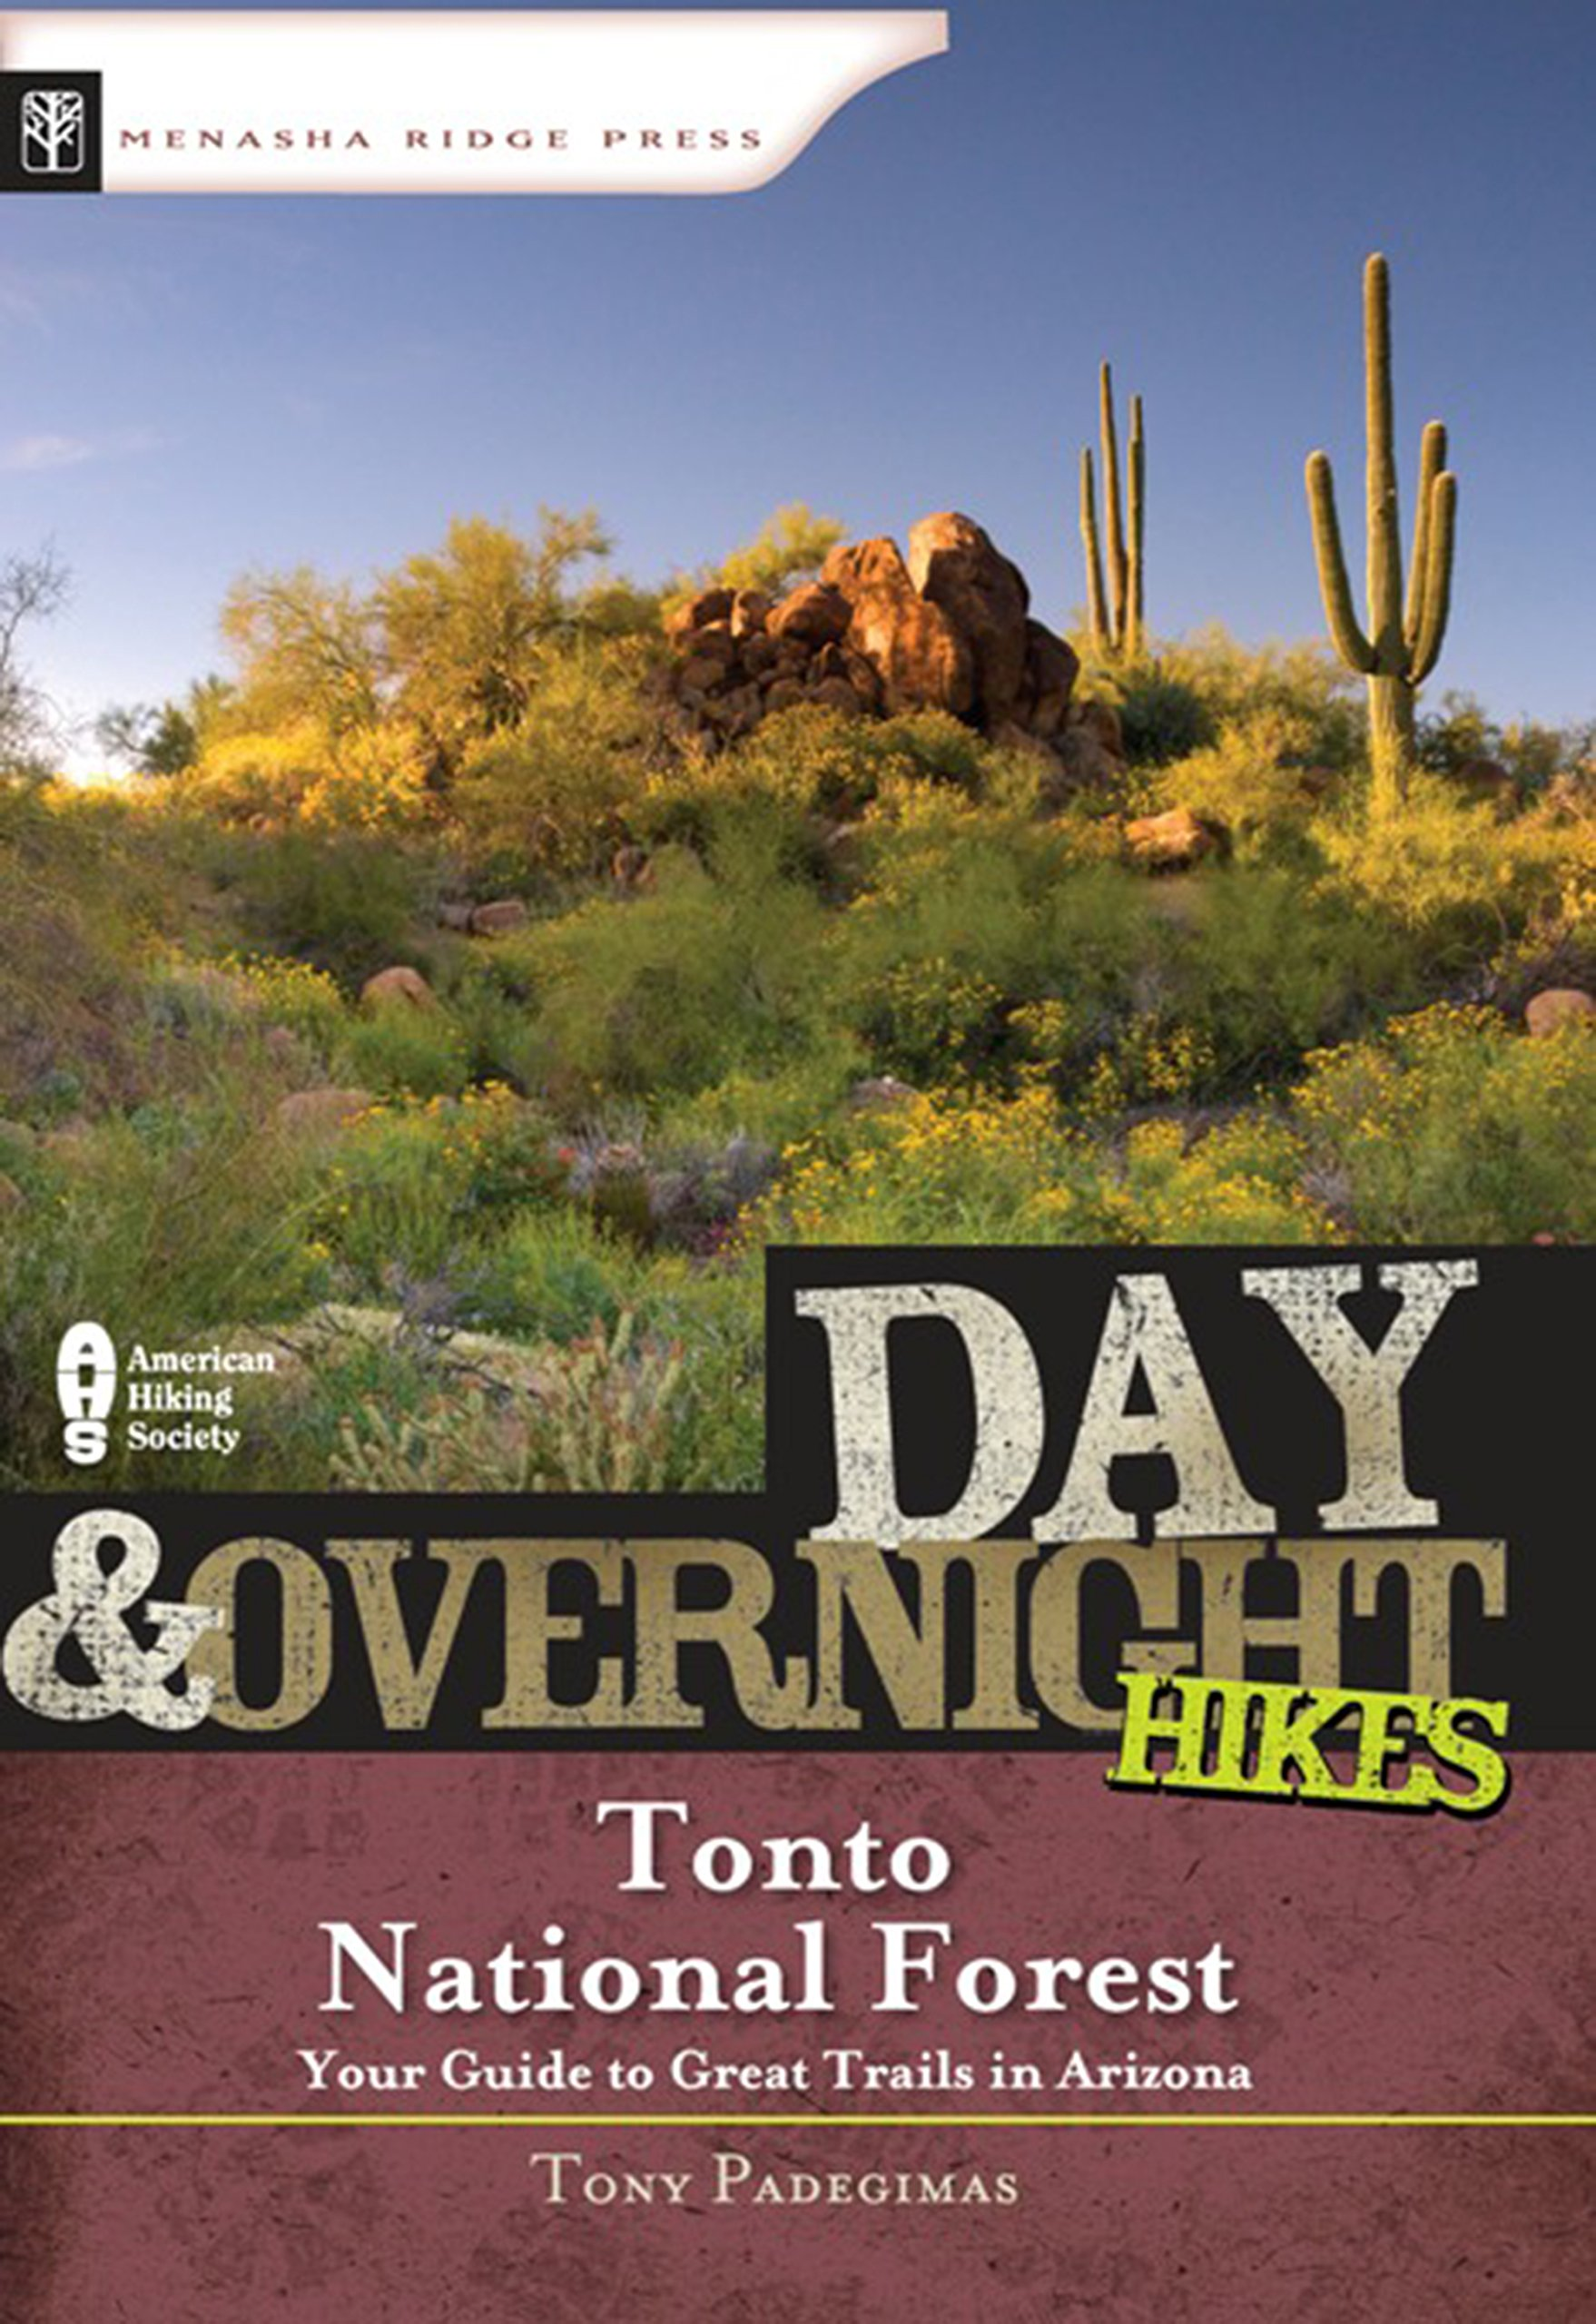 Day and Overnight Hikes: Tonto National Forest ebook